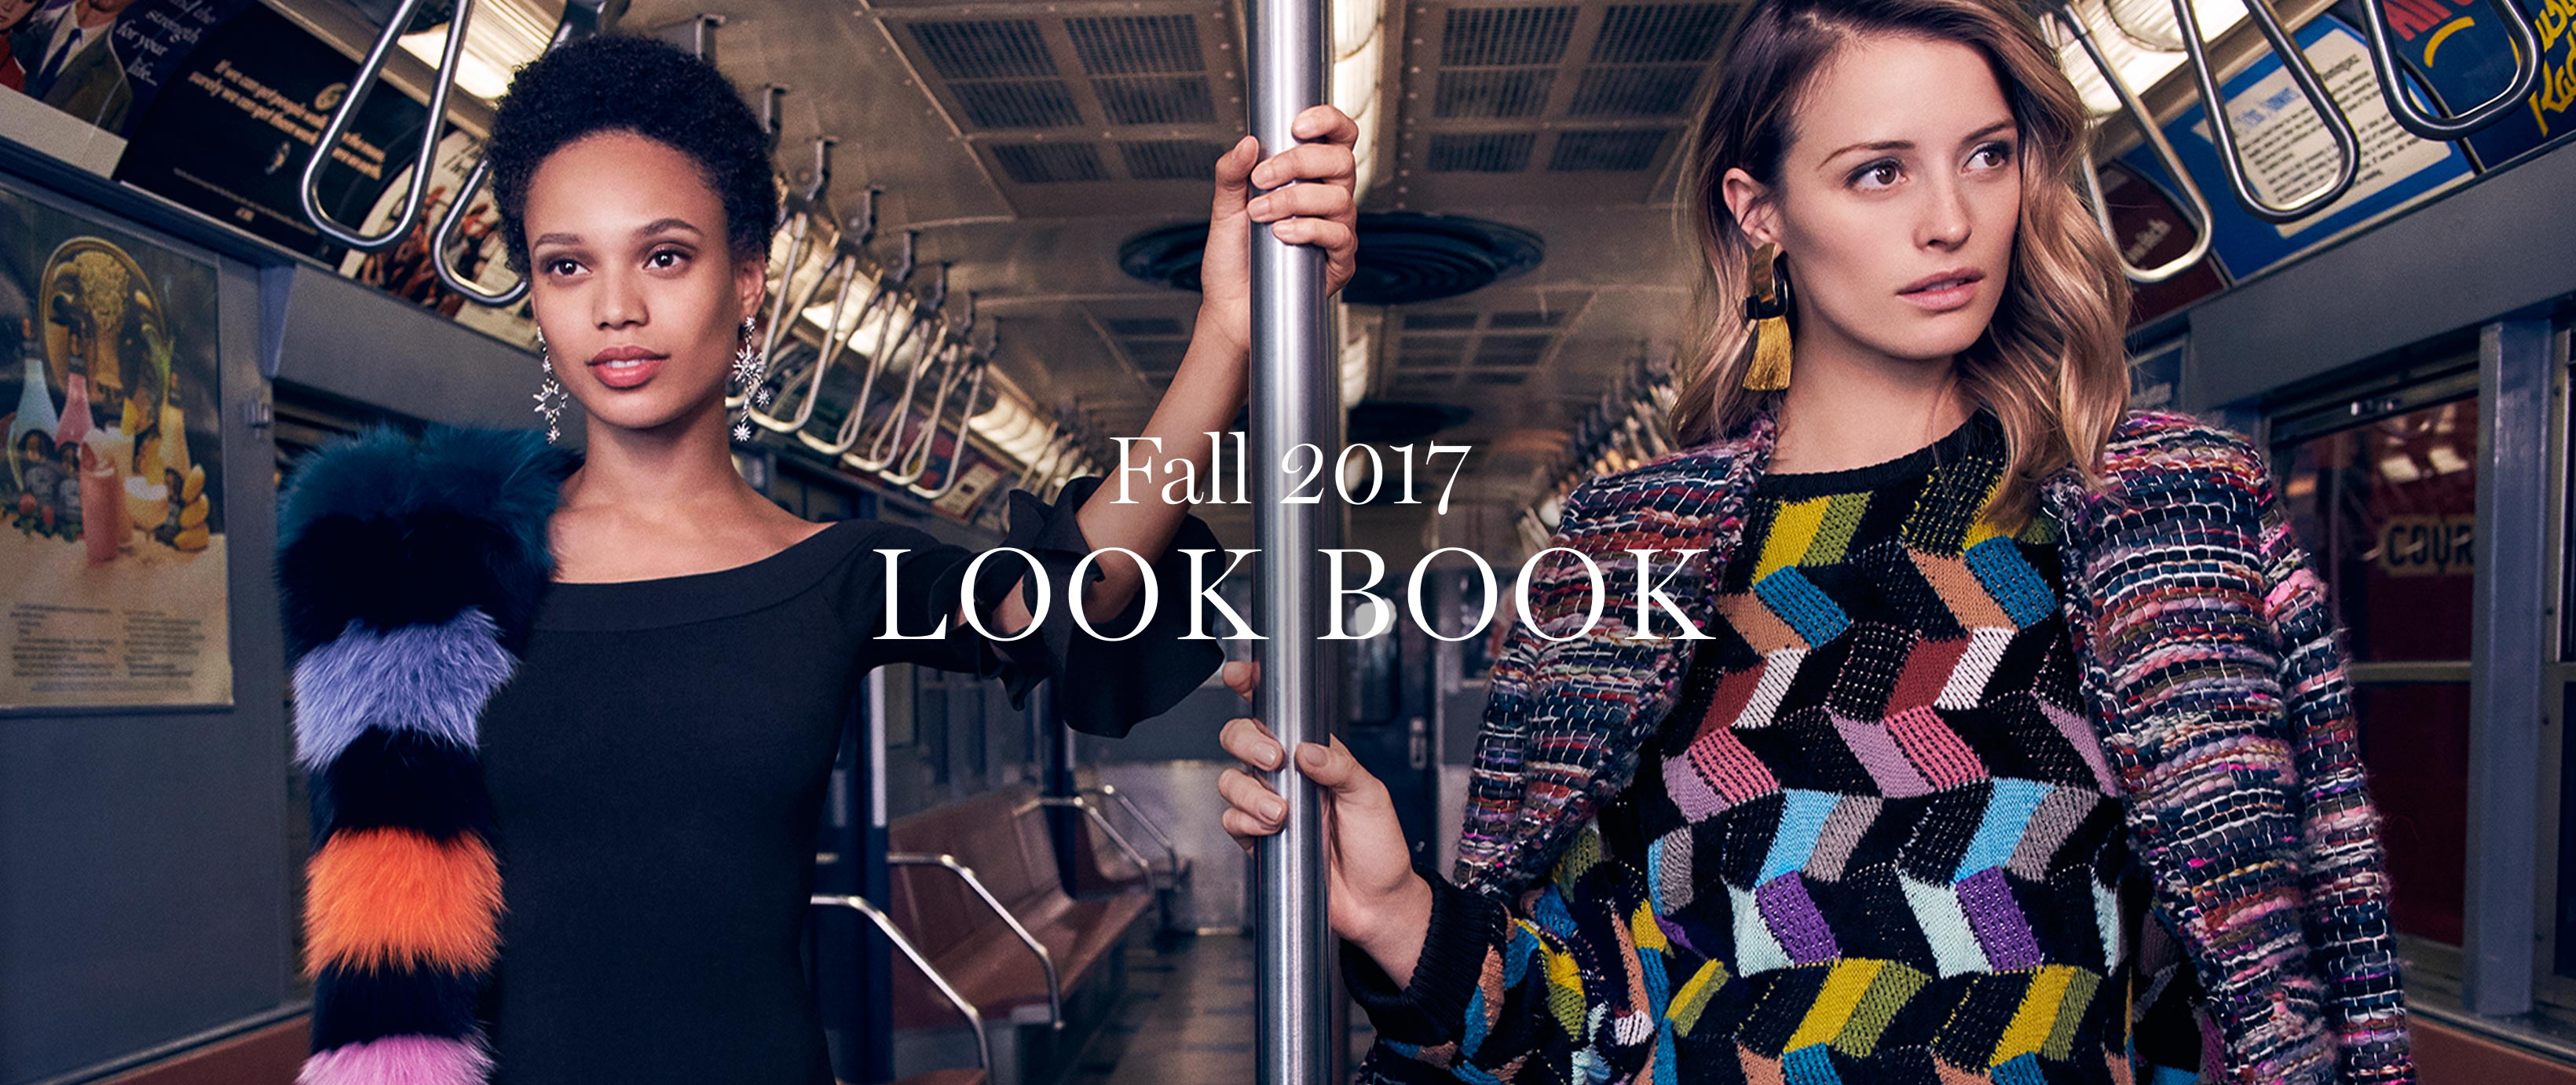 Experience The Look Book